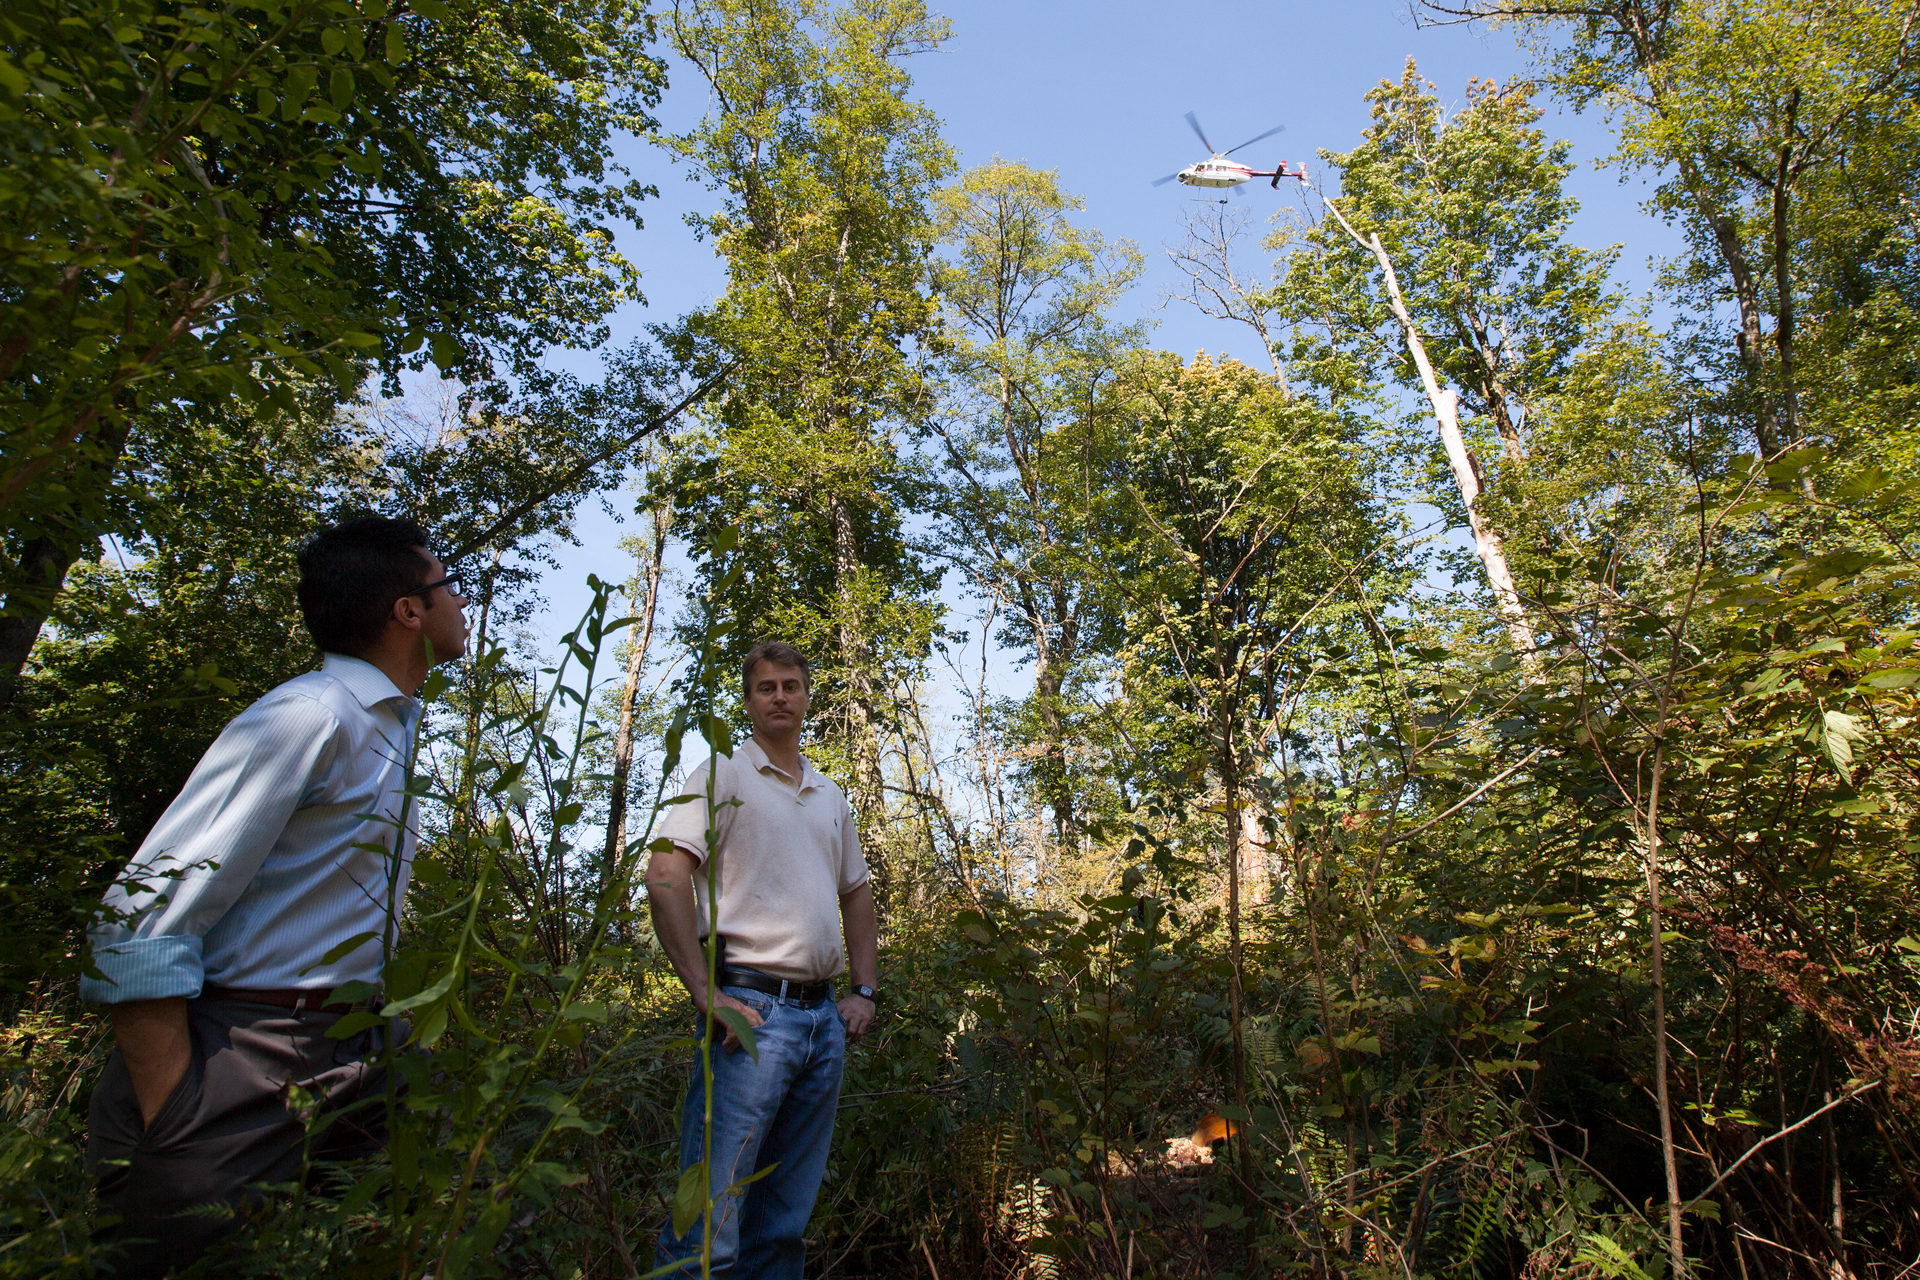 Kinder Morgan employees stand in the area where their company illegaly cut 13 Red Aldersin the Burnaby Mountain Conservation Area. The Kinder Morgan helicopter flies above.  Kinder Morgan removed these trees so that they could drill a borehole to survey the mountain for the proposed Trans Mountain Pipeline Expansion Project.